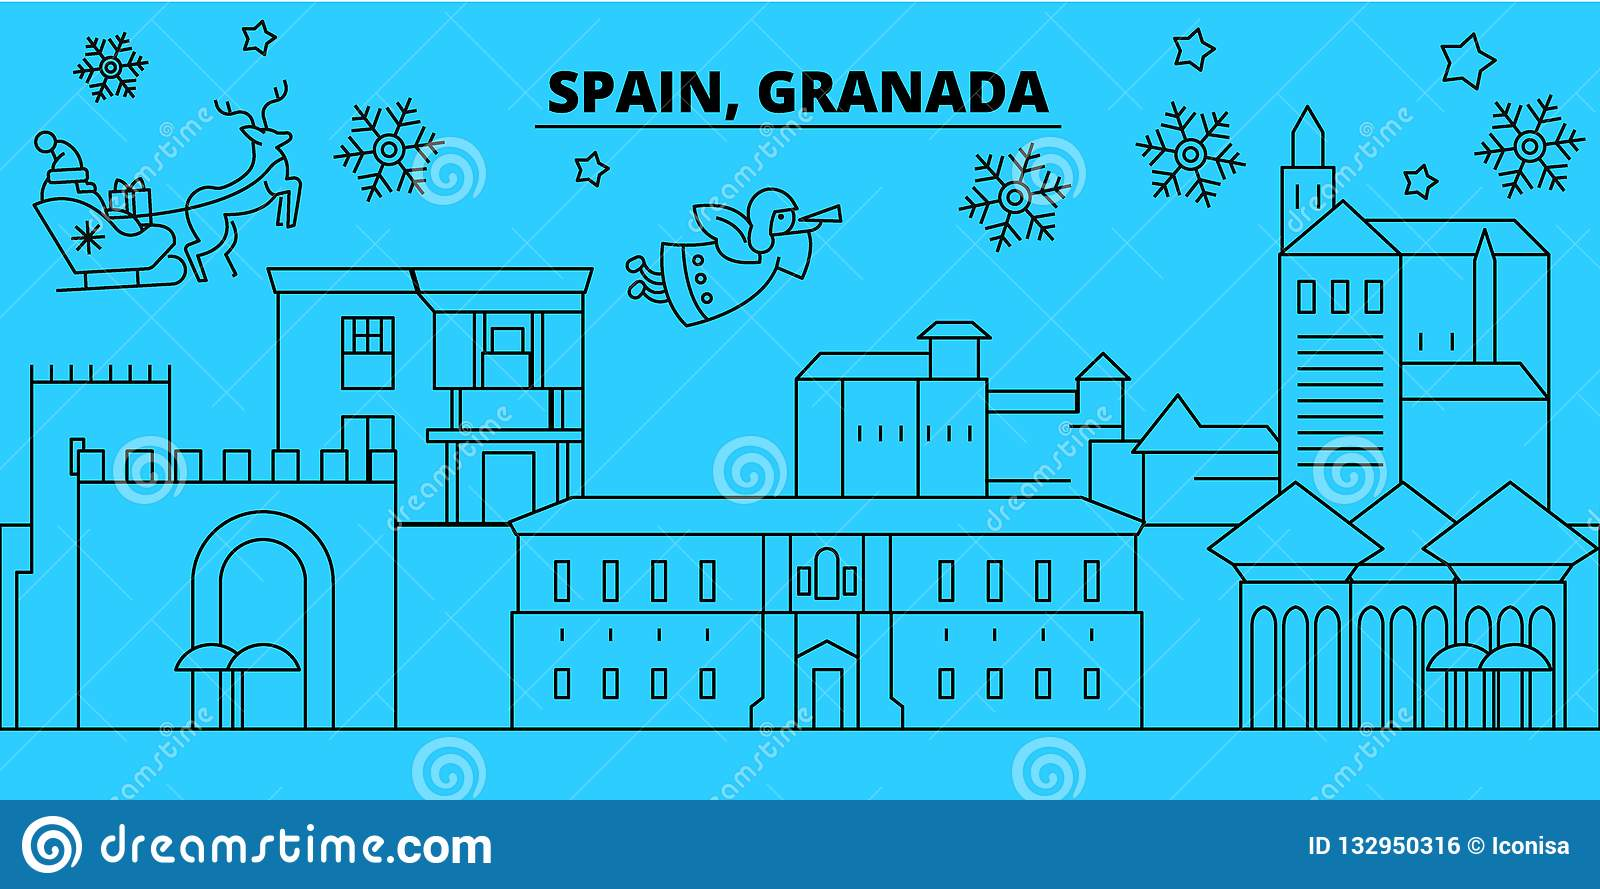 Spain, Granada winter holidays skyline. Merry Christmas, Happy New Year decorated banner with Santa Claus.Spain, Granada